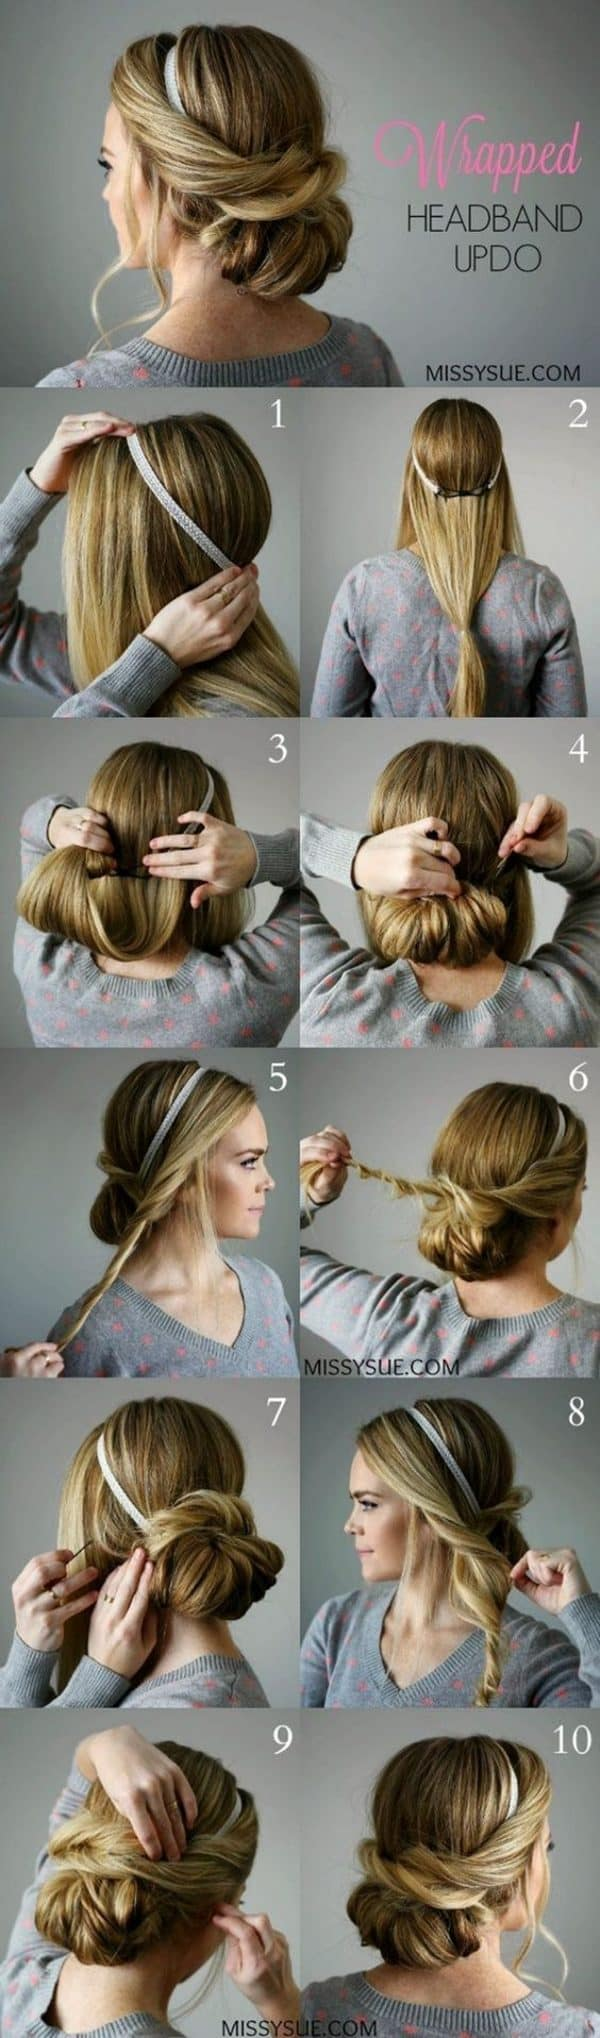 Gorgeous Office Hairstyle Tutorials That Will Make You Look Professional At Work